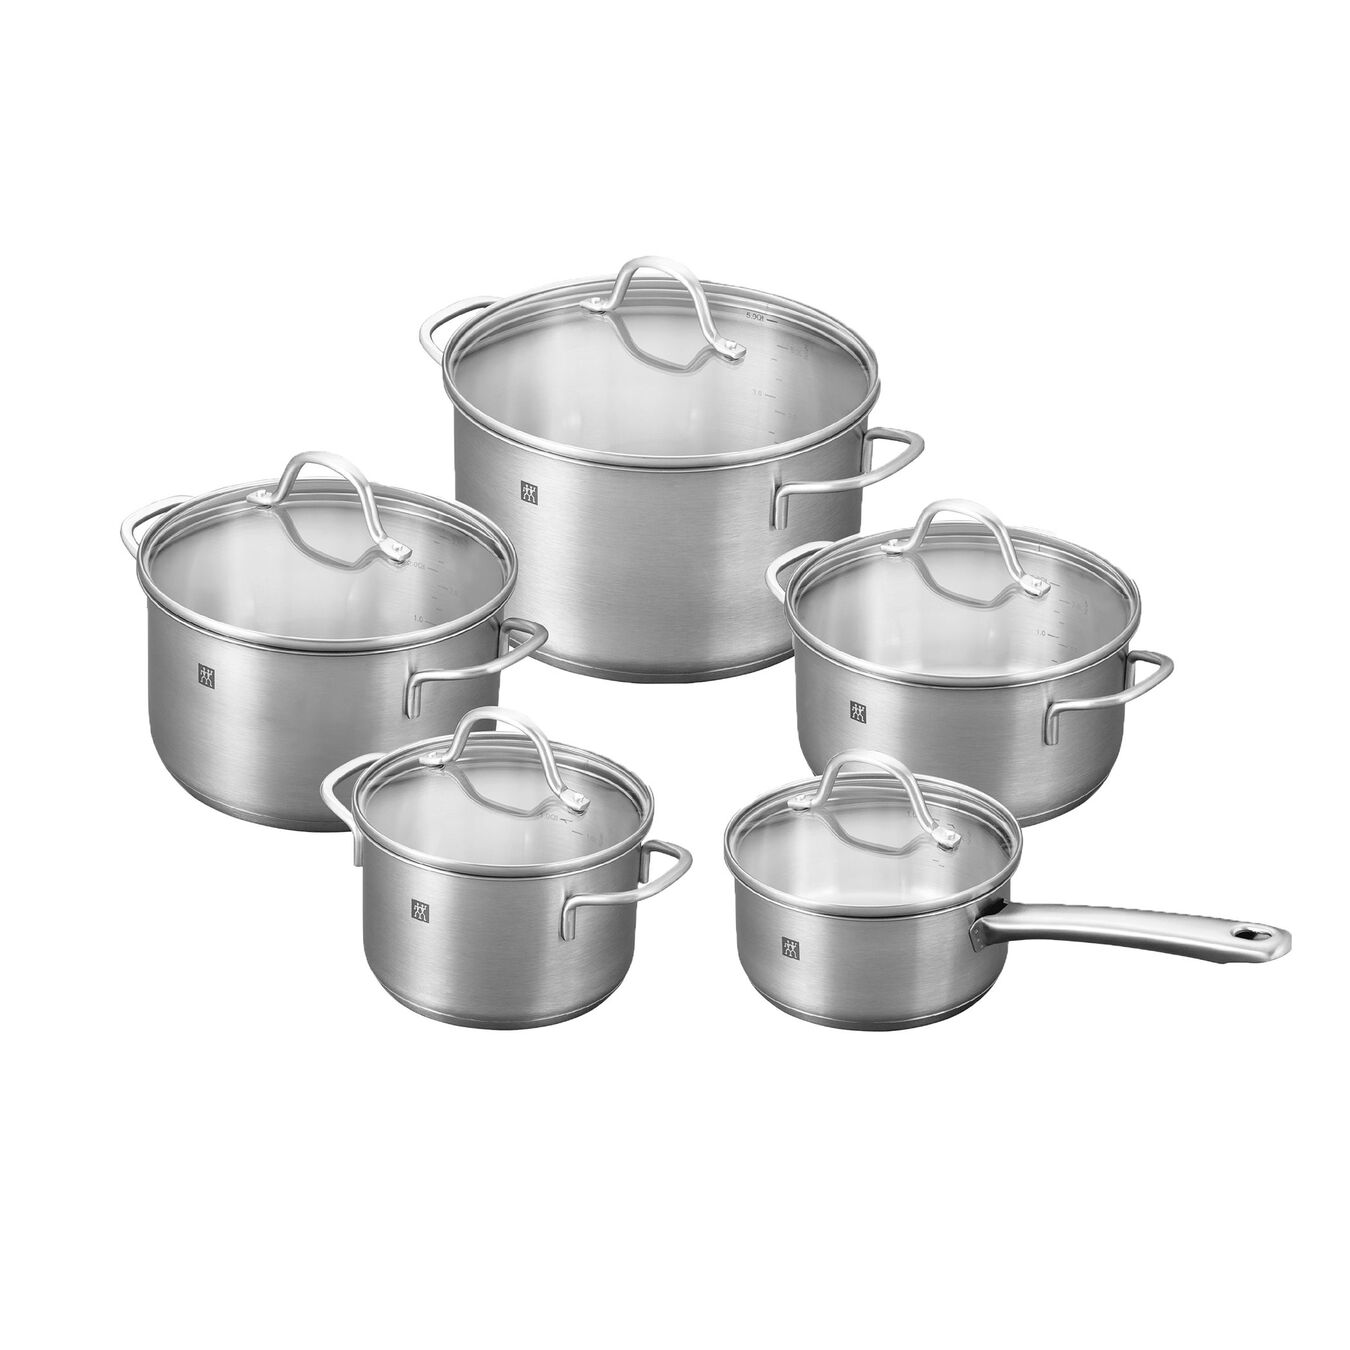 Pot set, 10 Piece | round | 18/10 Stainless Steel,,large 1